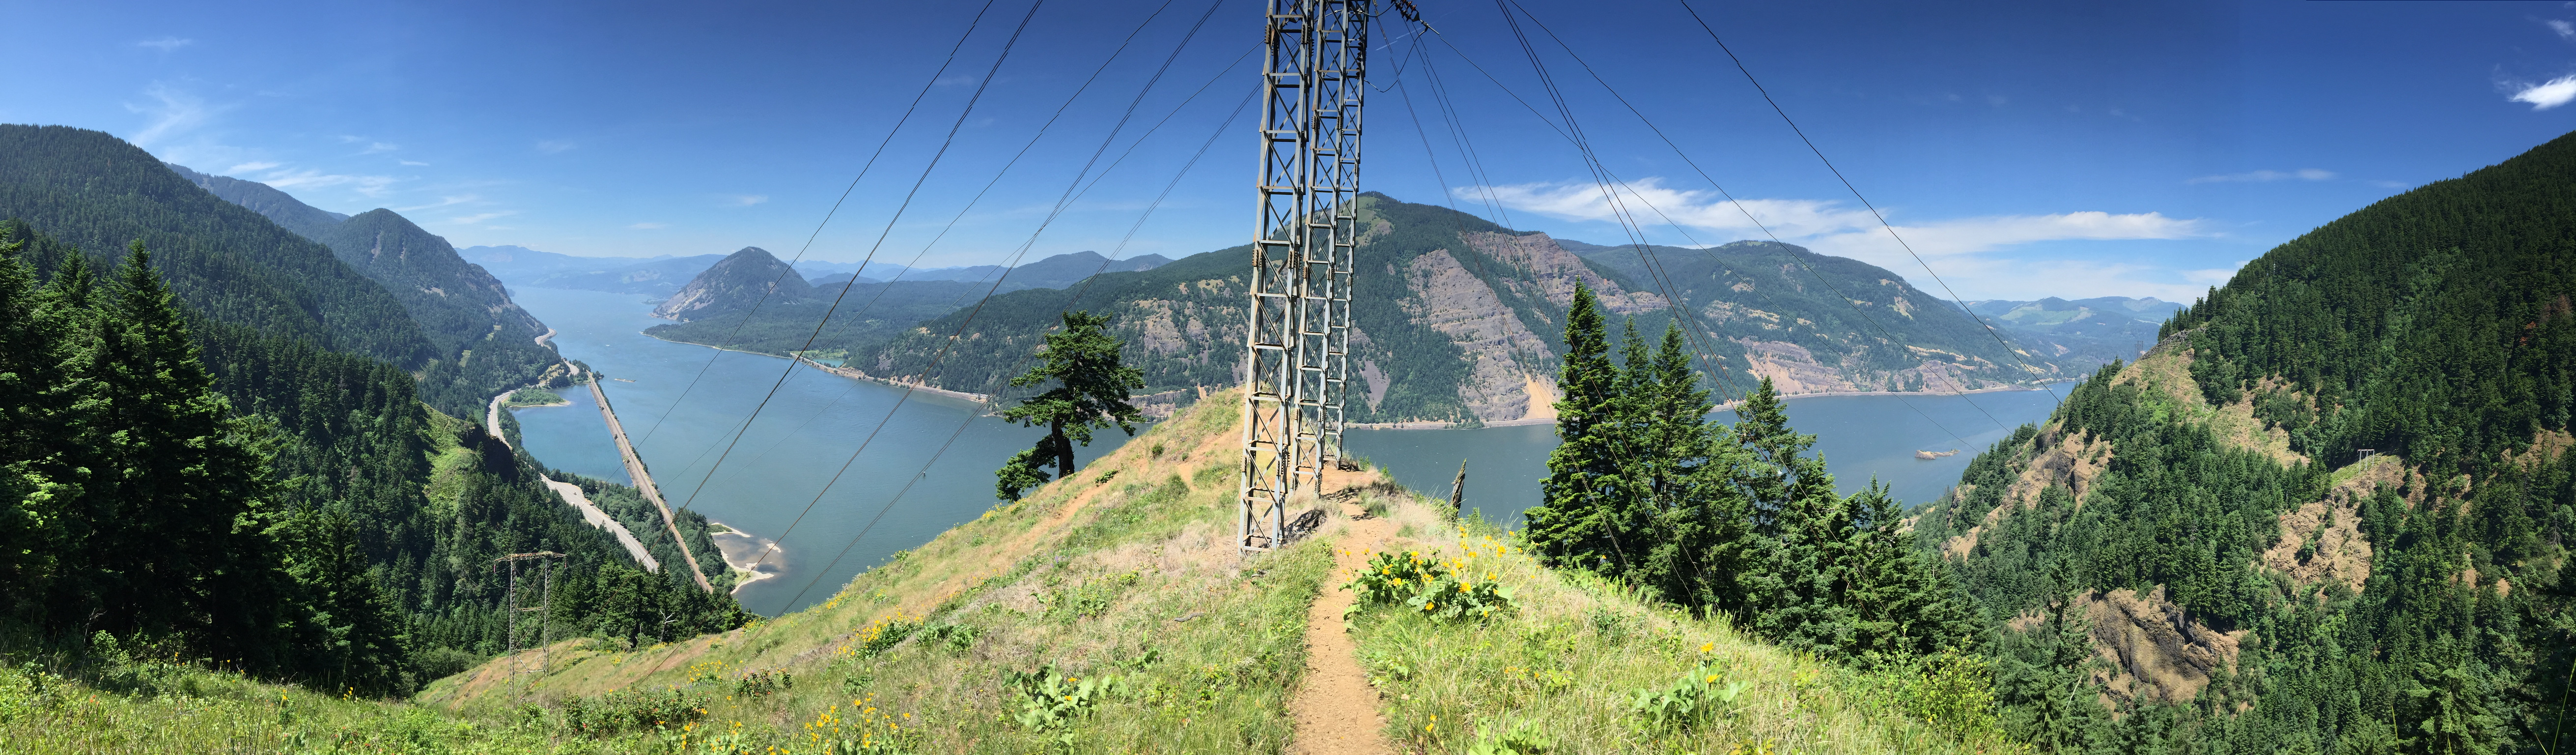 Hiking Mt Defiance, Oregon – The Hangriest of Gorge Hikes